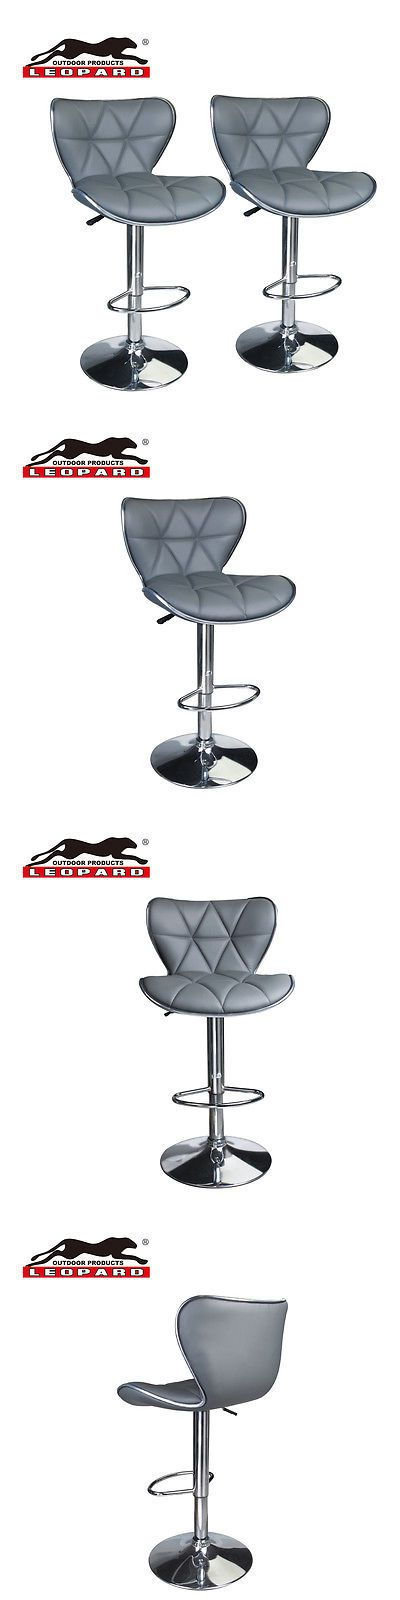 Bar Stools 153928: Leopard Outdoor Shell Back Adjustable Bar Stools, Set Of 2, Grey -> BUY IT NOW ONLY: $89.99 on eBay!